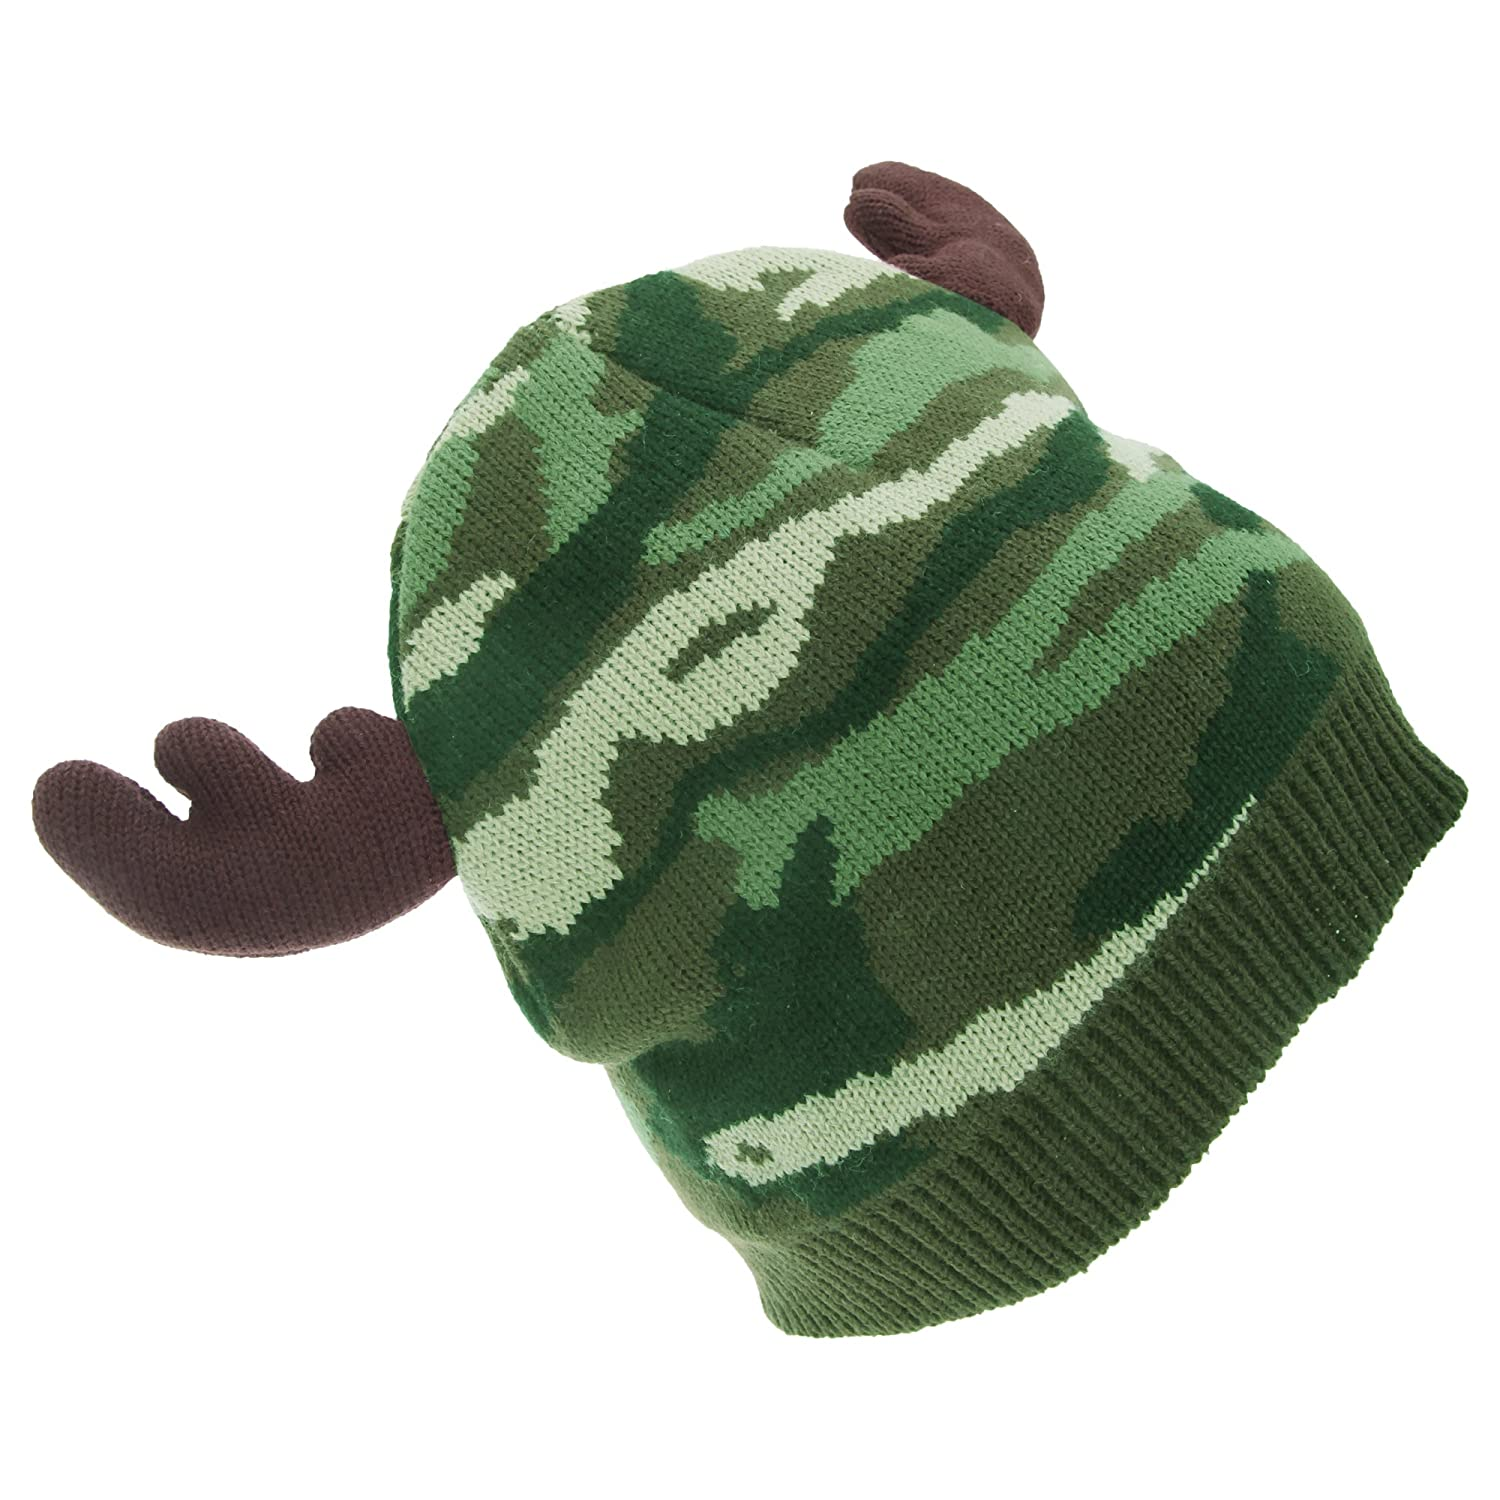 dfcc71ebff1 Amazon.com  FLOSO Mens Camo Pattern Winter Beanie Hat with Moose Antlers  (One Size) (Camo)  Clothing